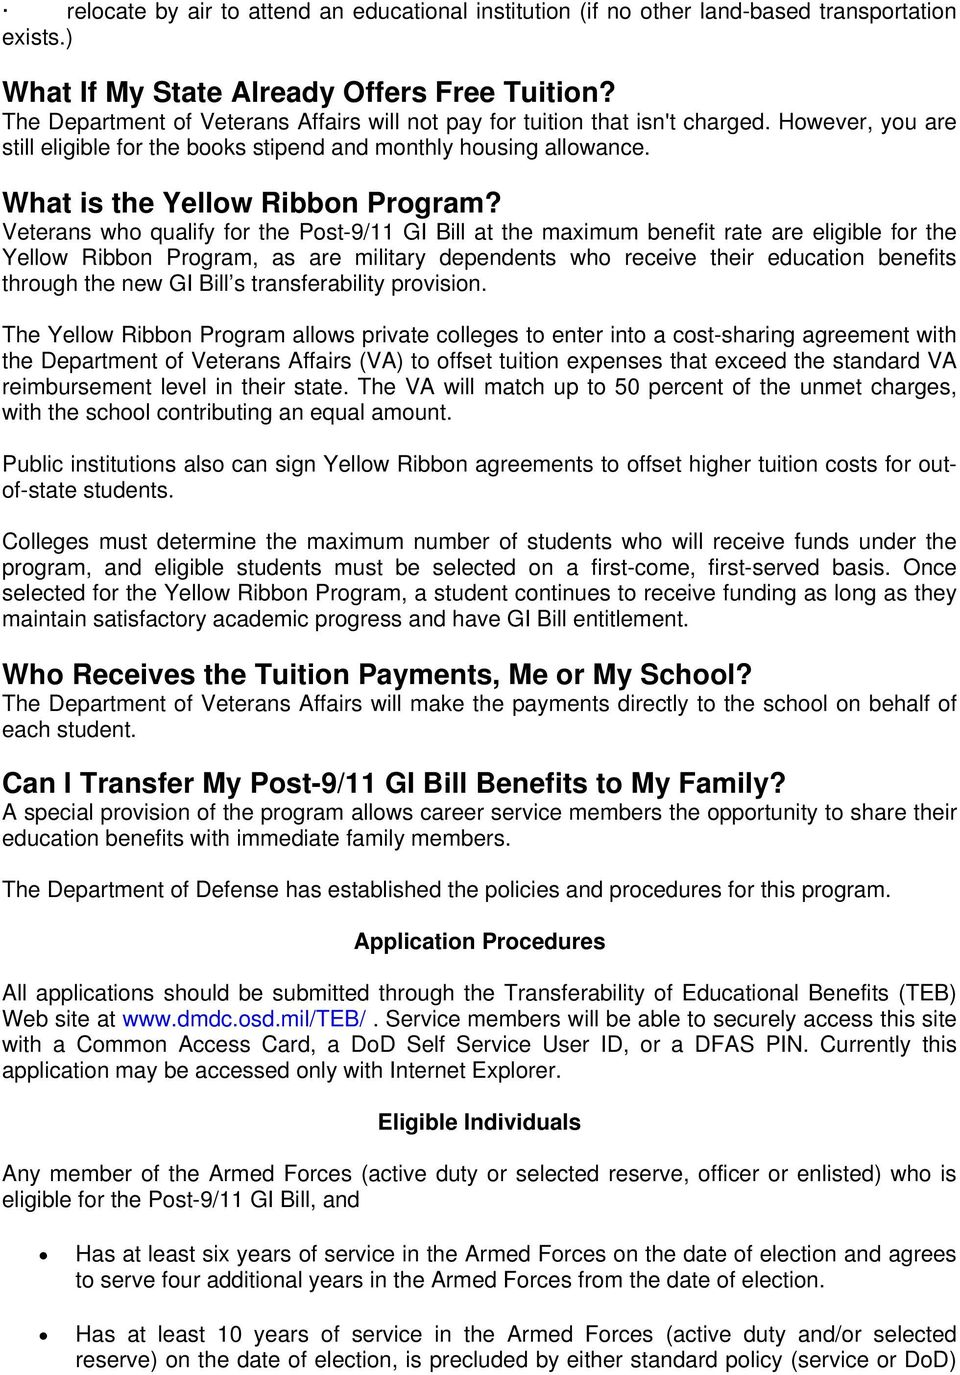 Veterans who qualify for the Post-9/11 GI Bill at the maximum benefit rate are eligible for the Yellow Ribbon Program, as are military dependents who receive their education benefits through the new